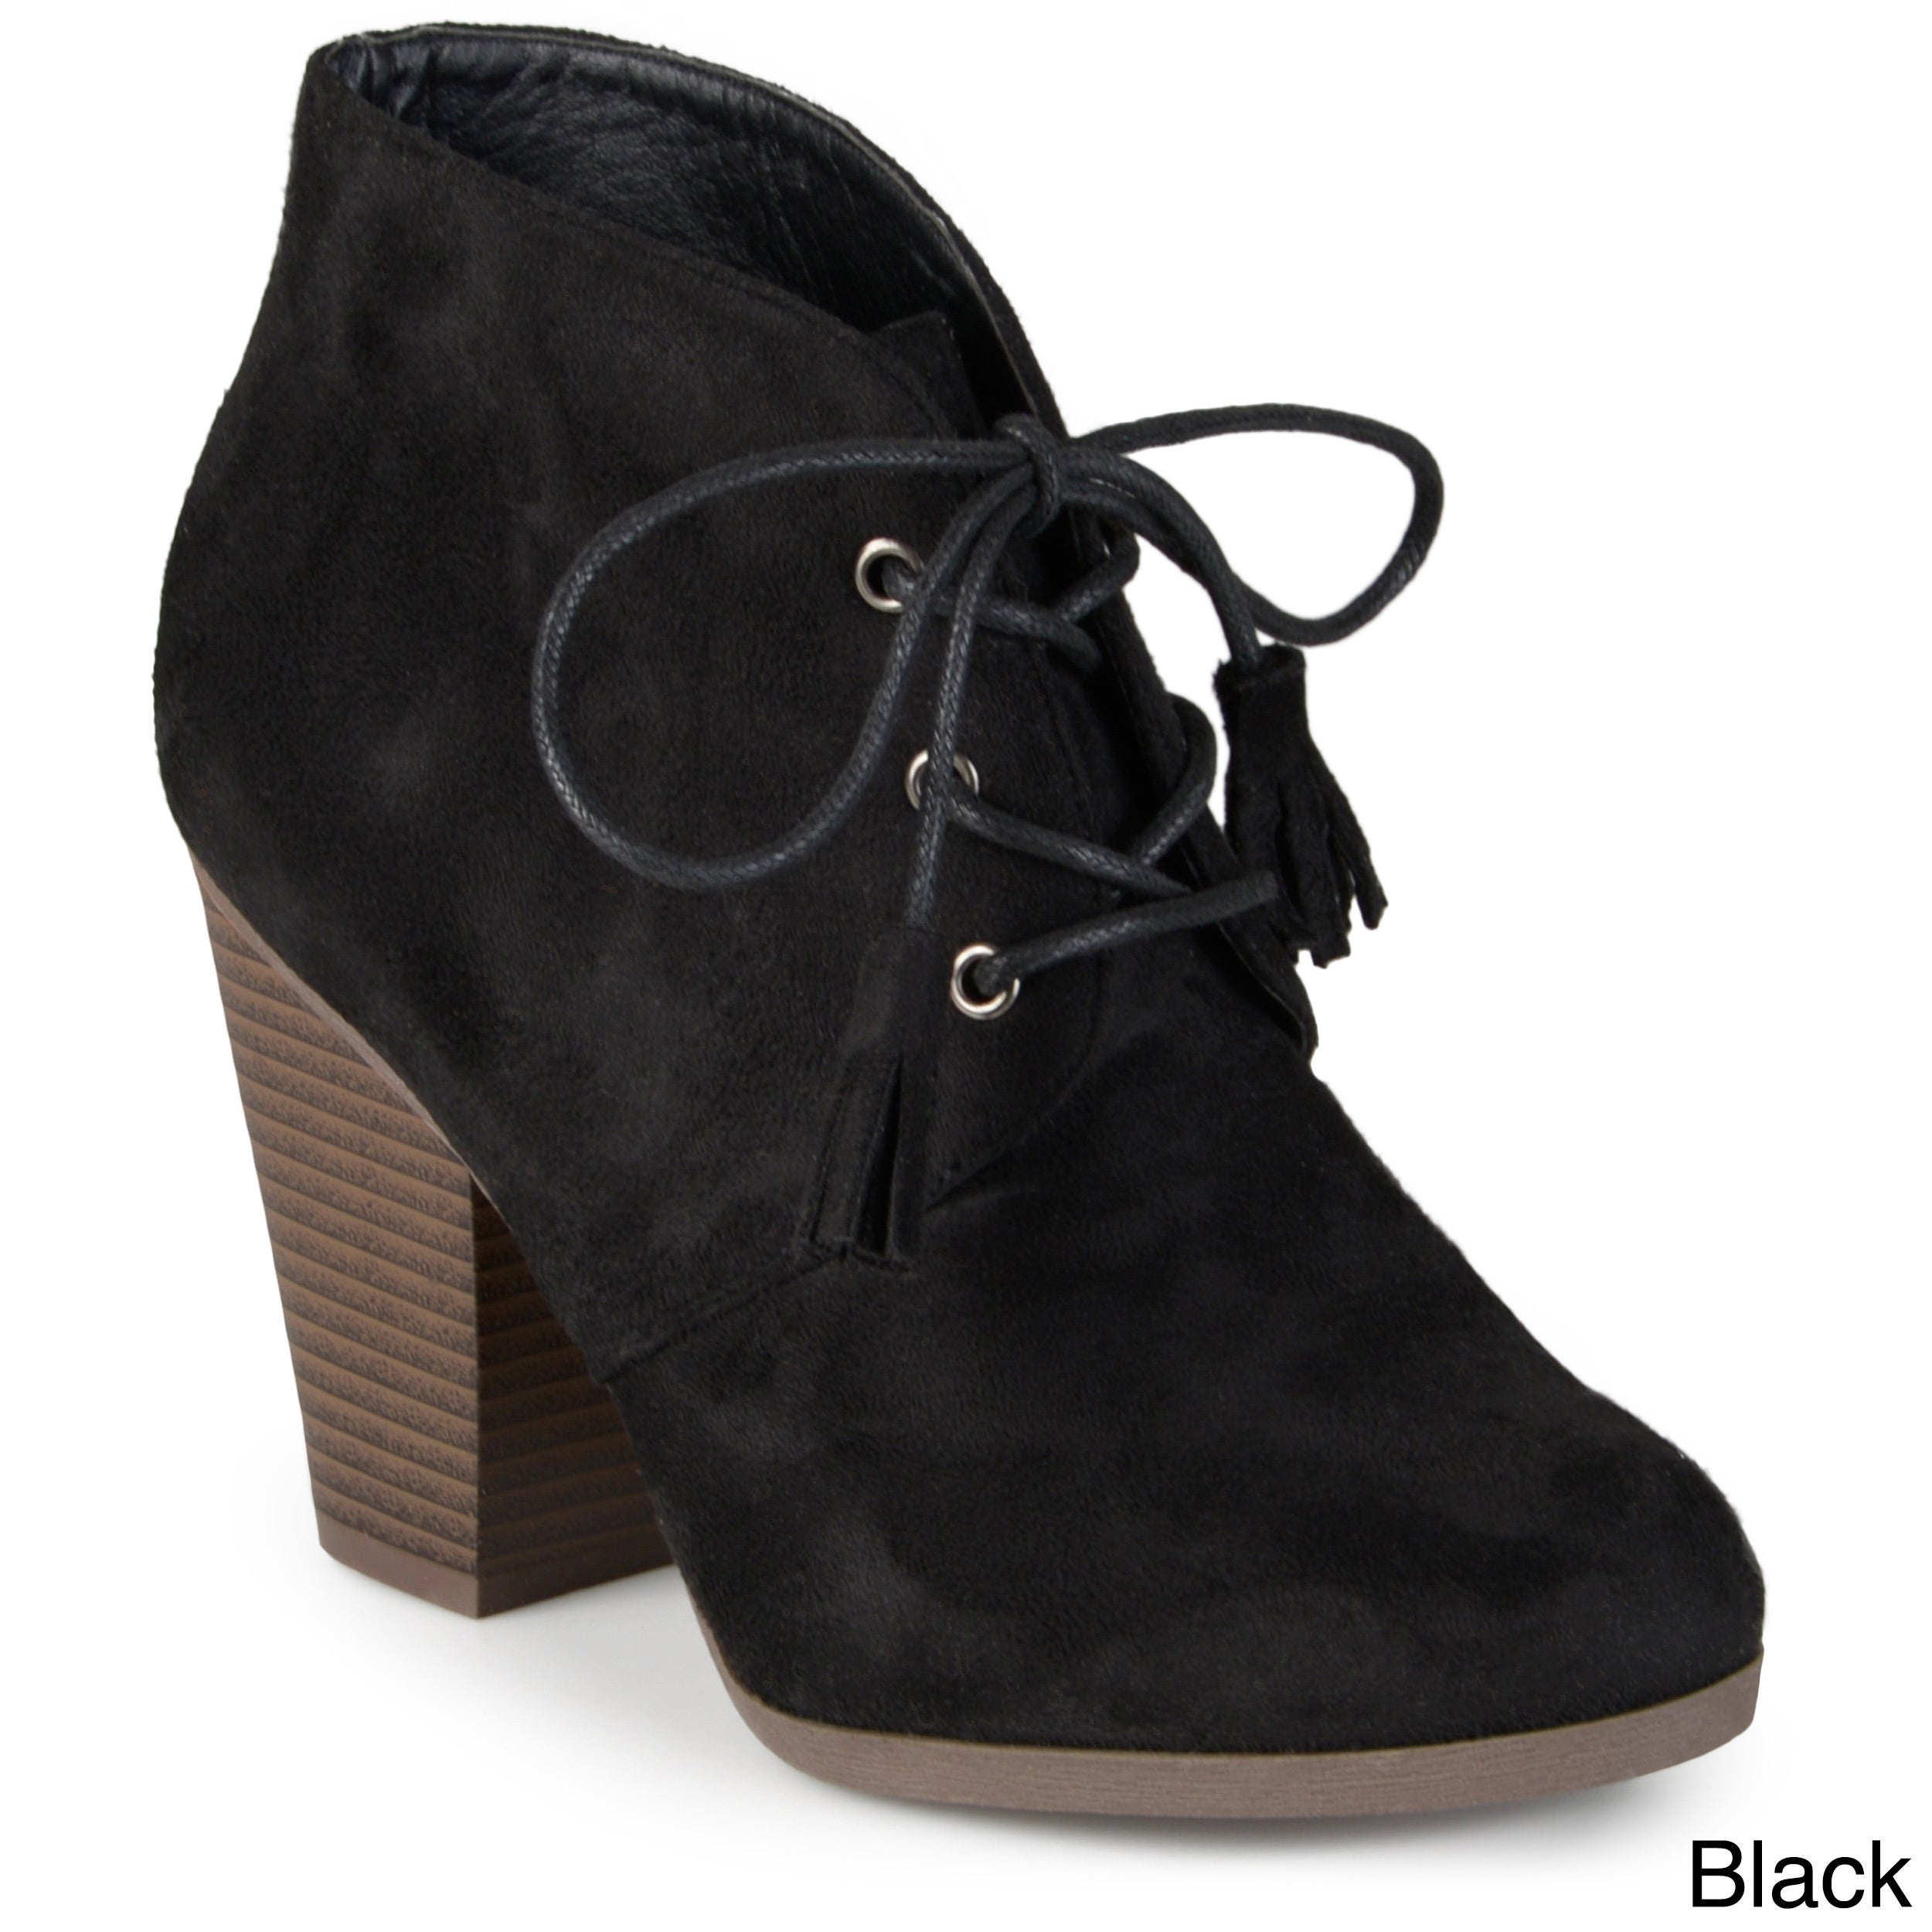 40cd4c089535 Shop Journee Collection Women s  Wen  Faux Suede Lace-up Ankle Booties -  Free Shipping Today - Overstock - 11332088